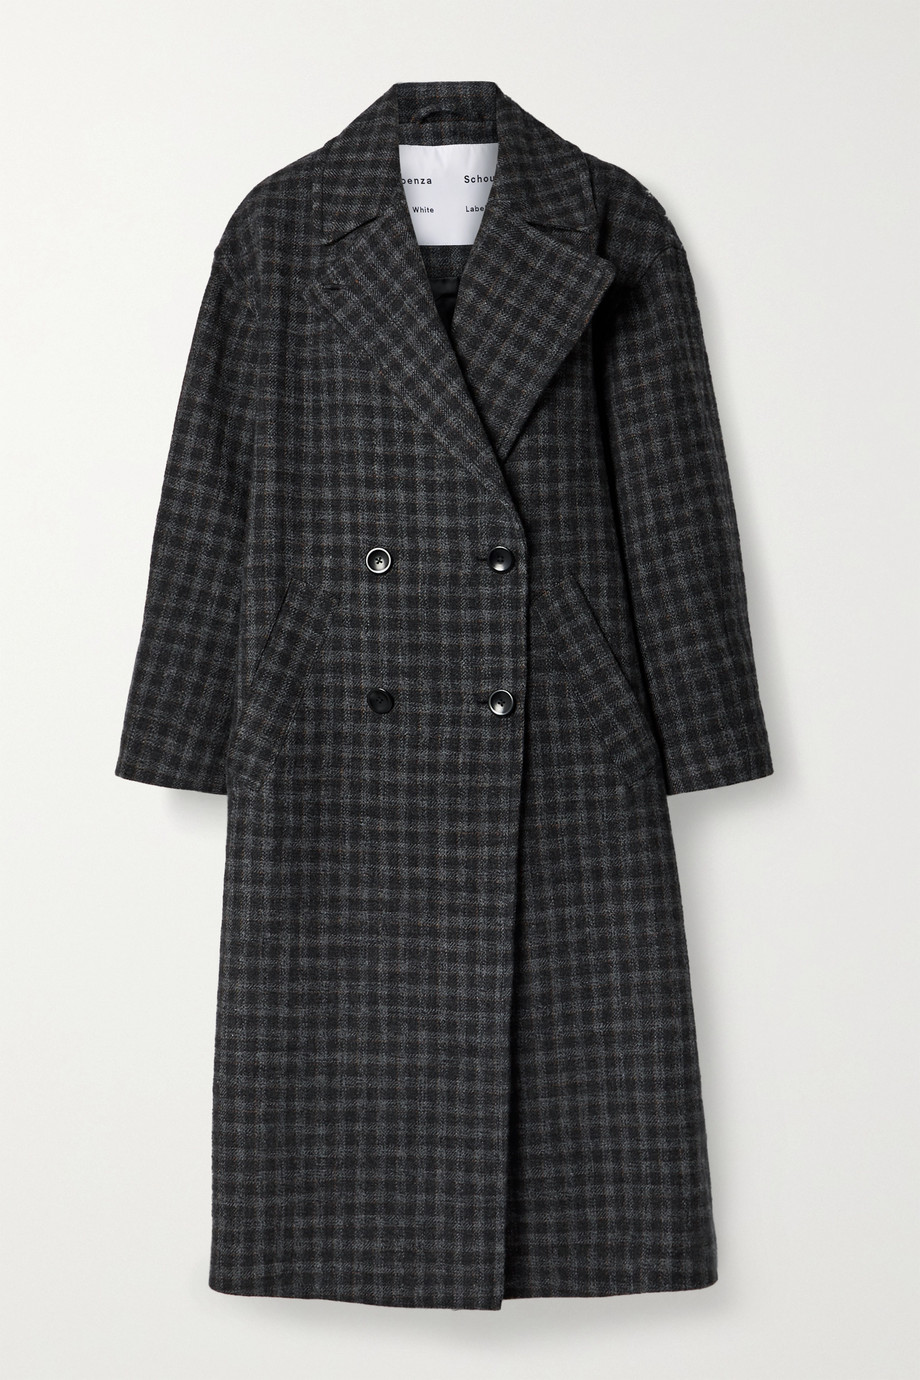 Proenza Schouler White Label Double-breasted checked wool and cotton-blend coat